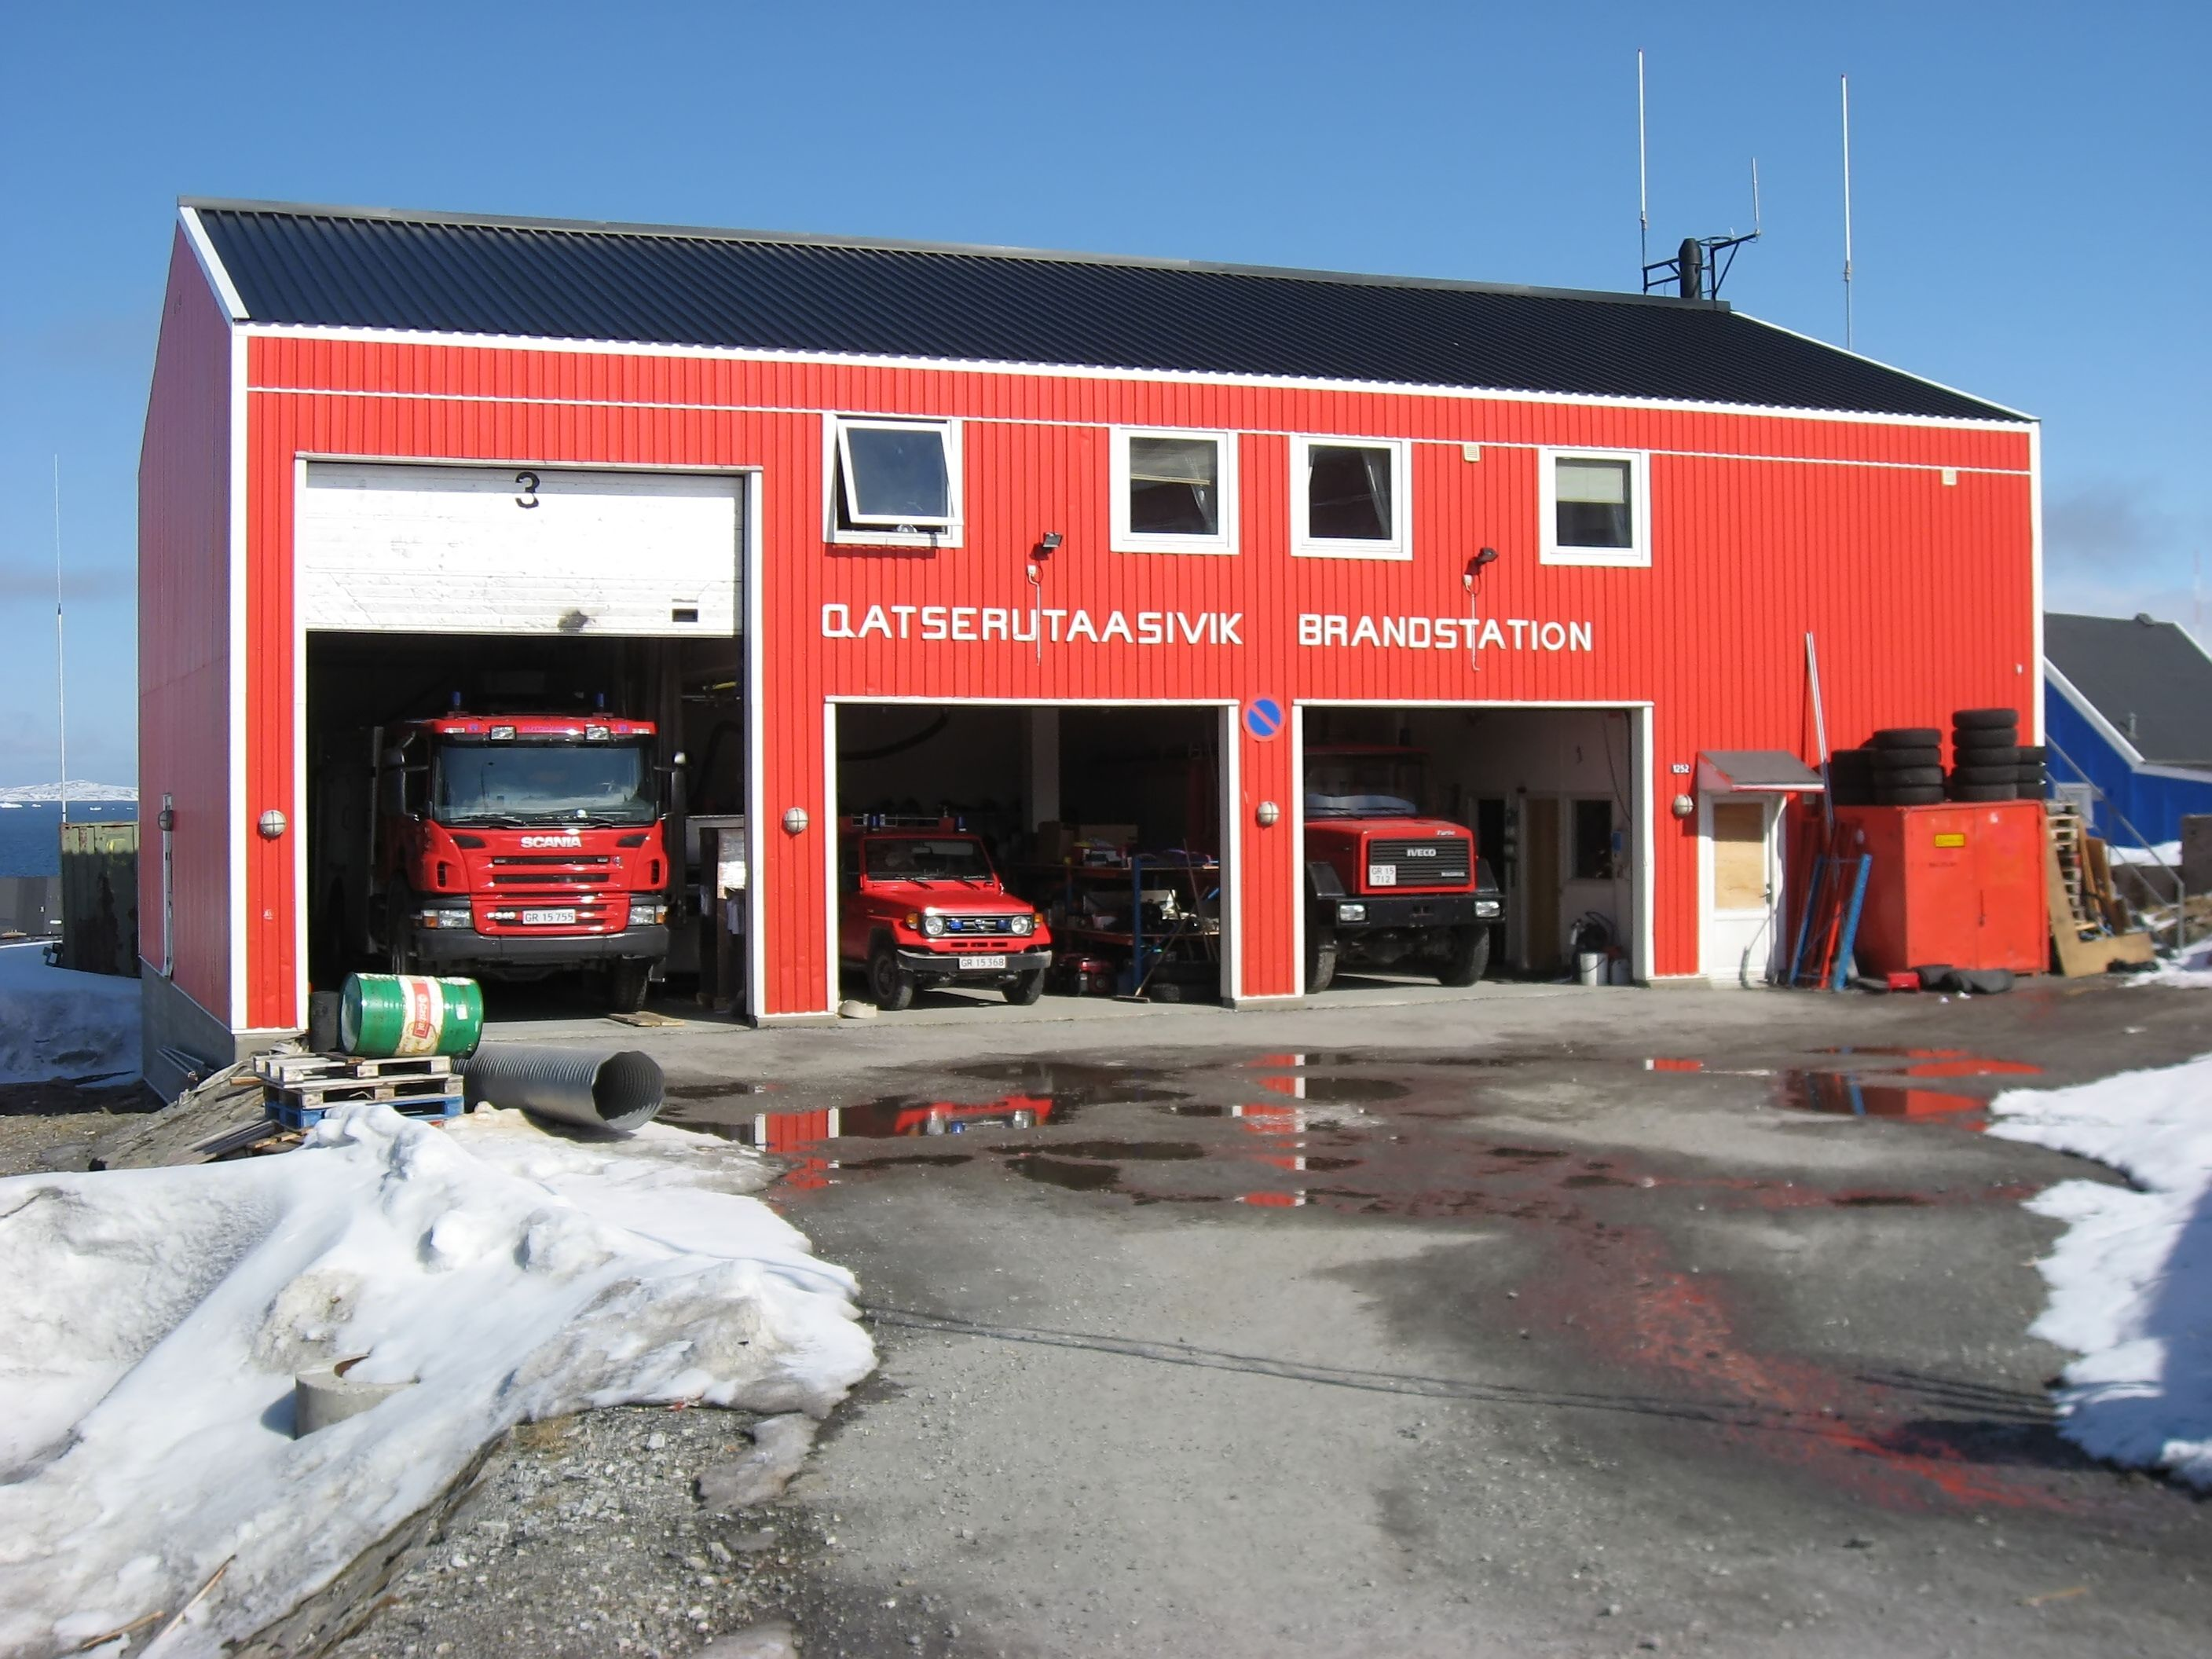 Fire Station In Upernavik Greenland ★。☆。jpm Entertainment